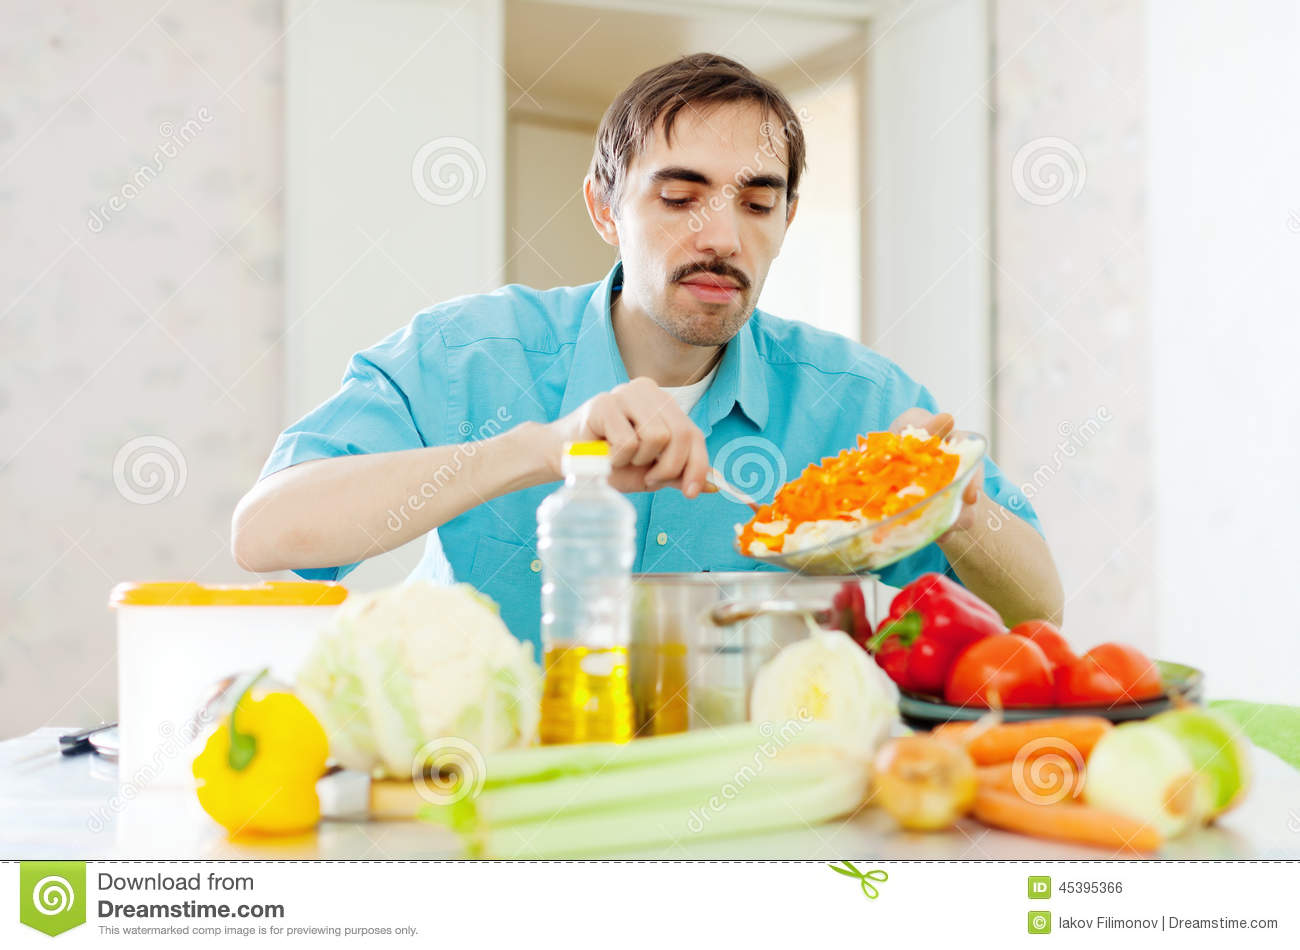 Man Doing Lunch With Vegetables Stock Photo - Image of slicing ...